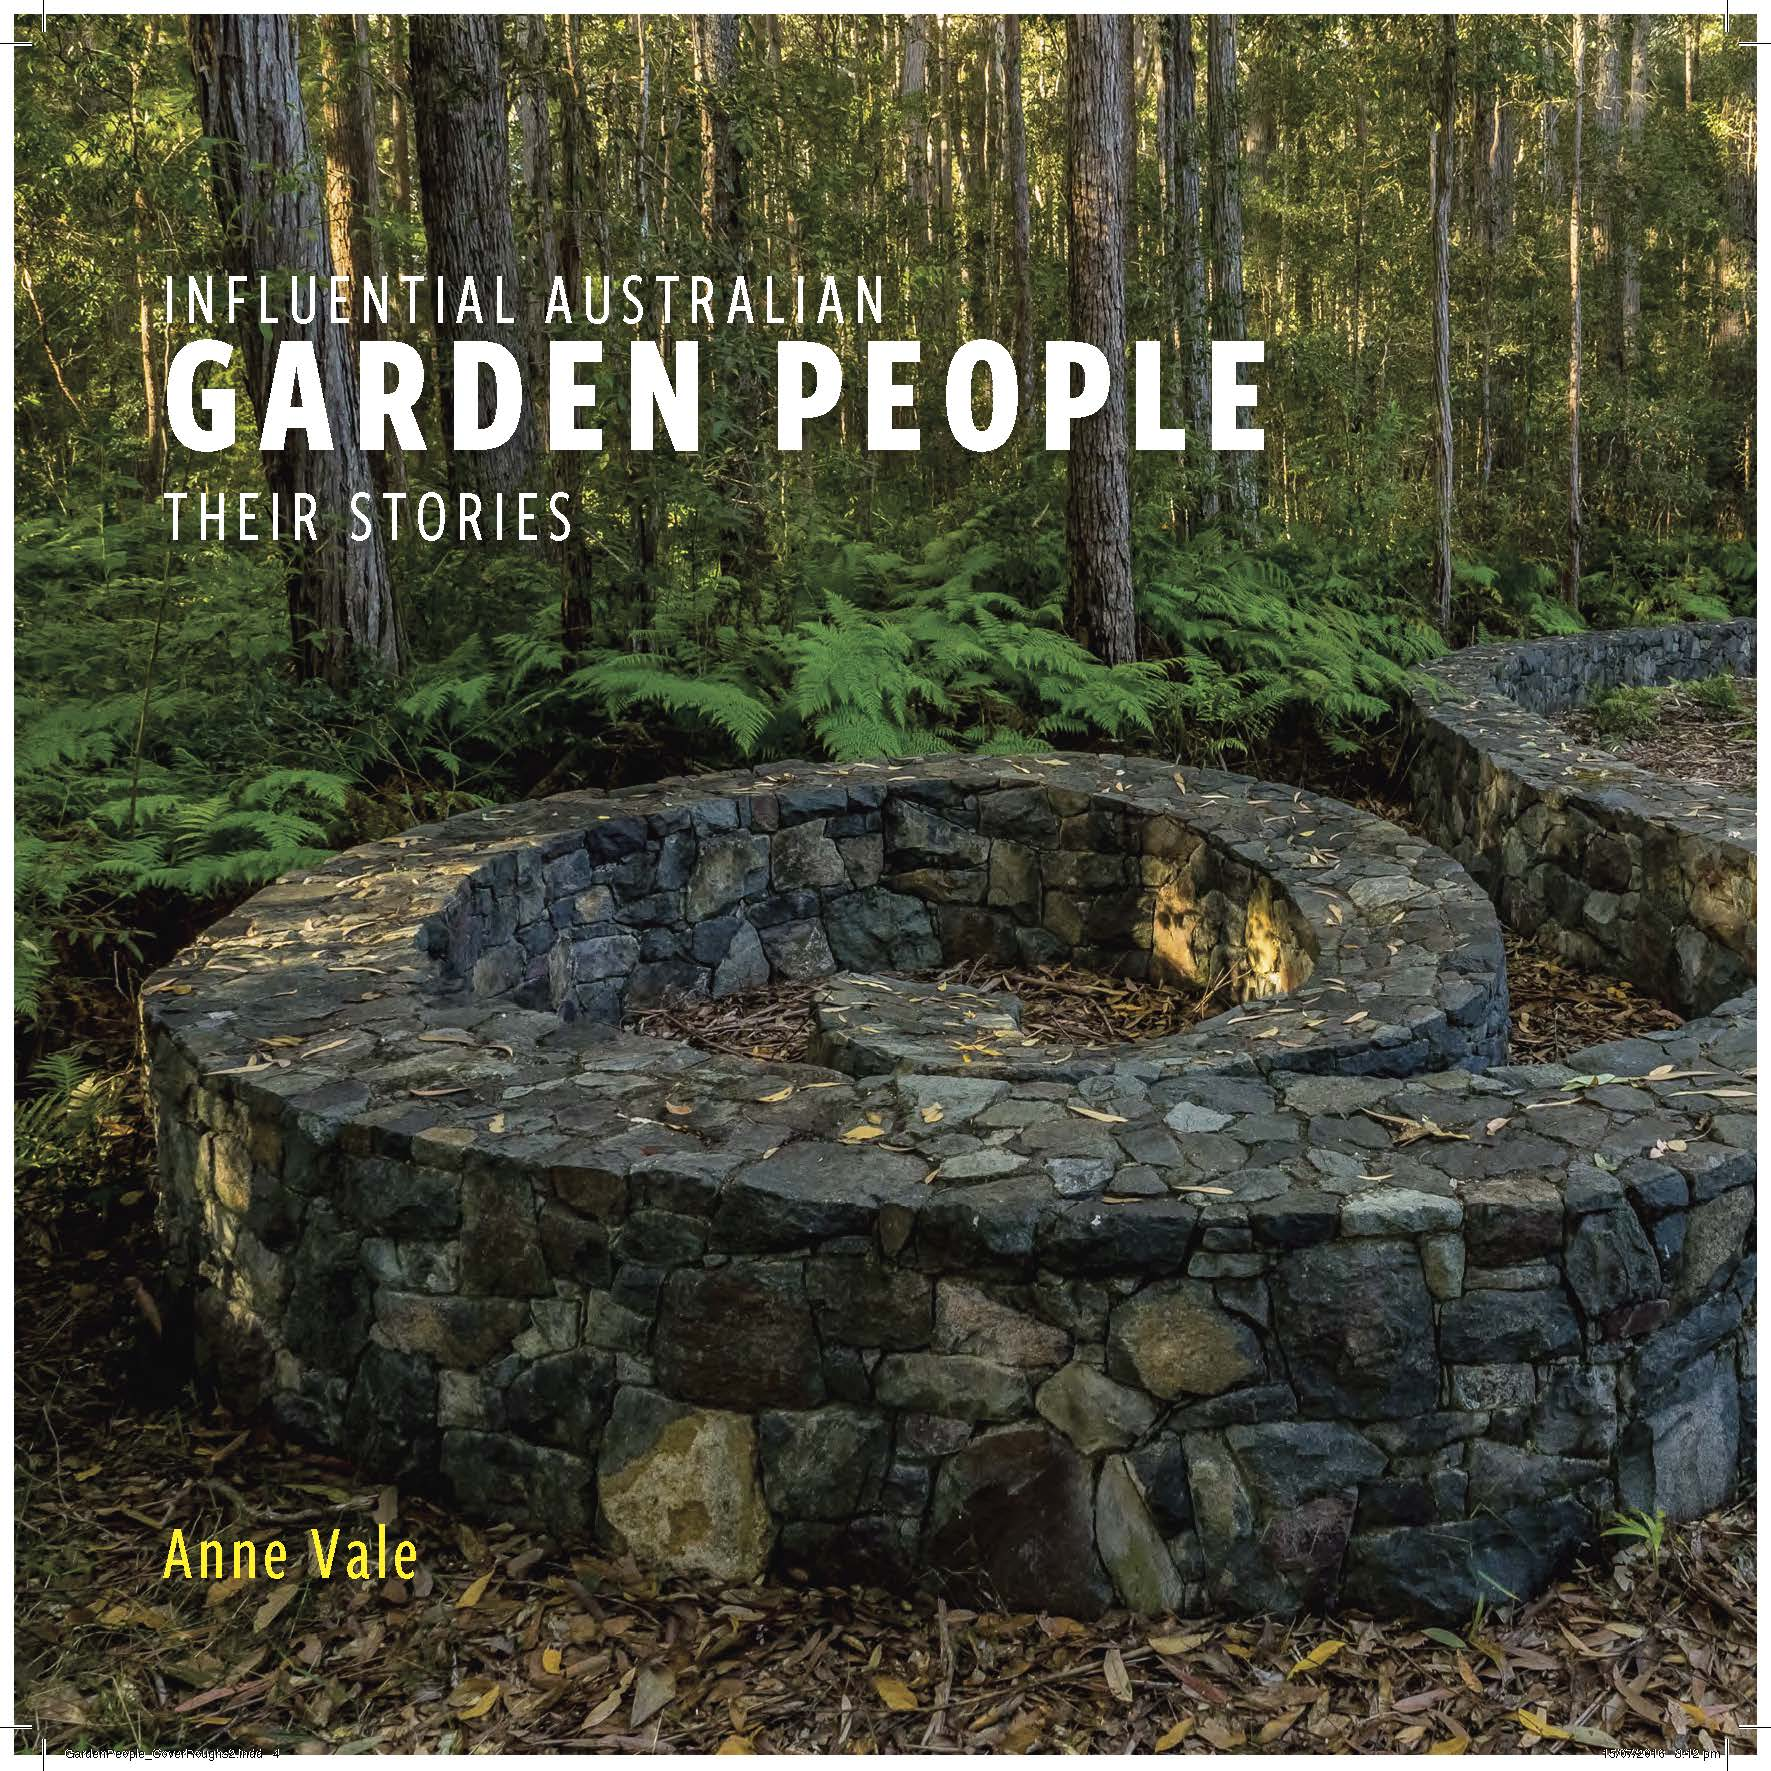 Publications anne vale garden history consultancy click on the link to hear anne discussing influential australian garden people with michael williams on blueprint for living radio national october 13th malvernweather